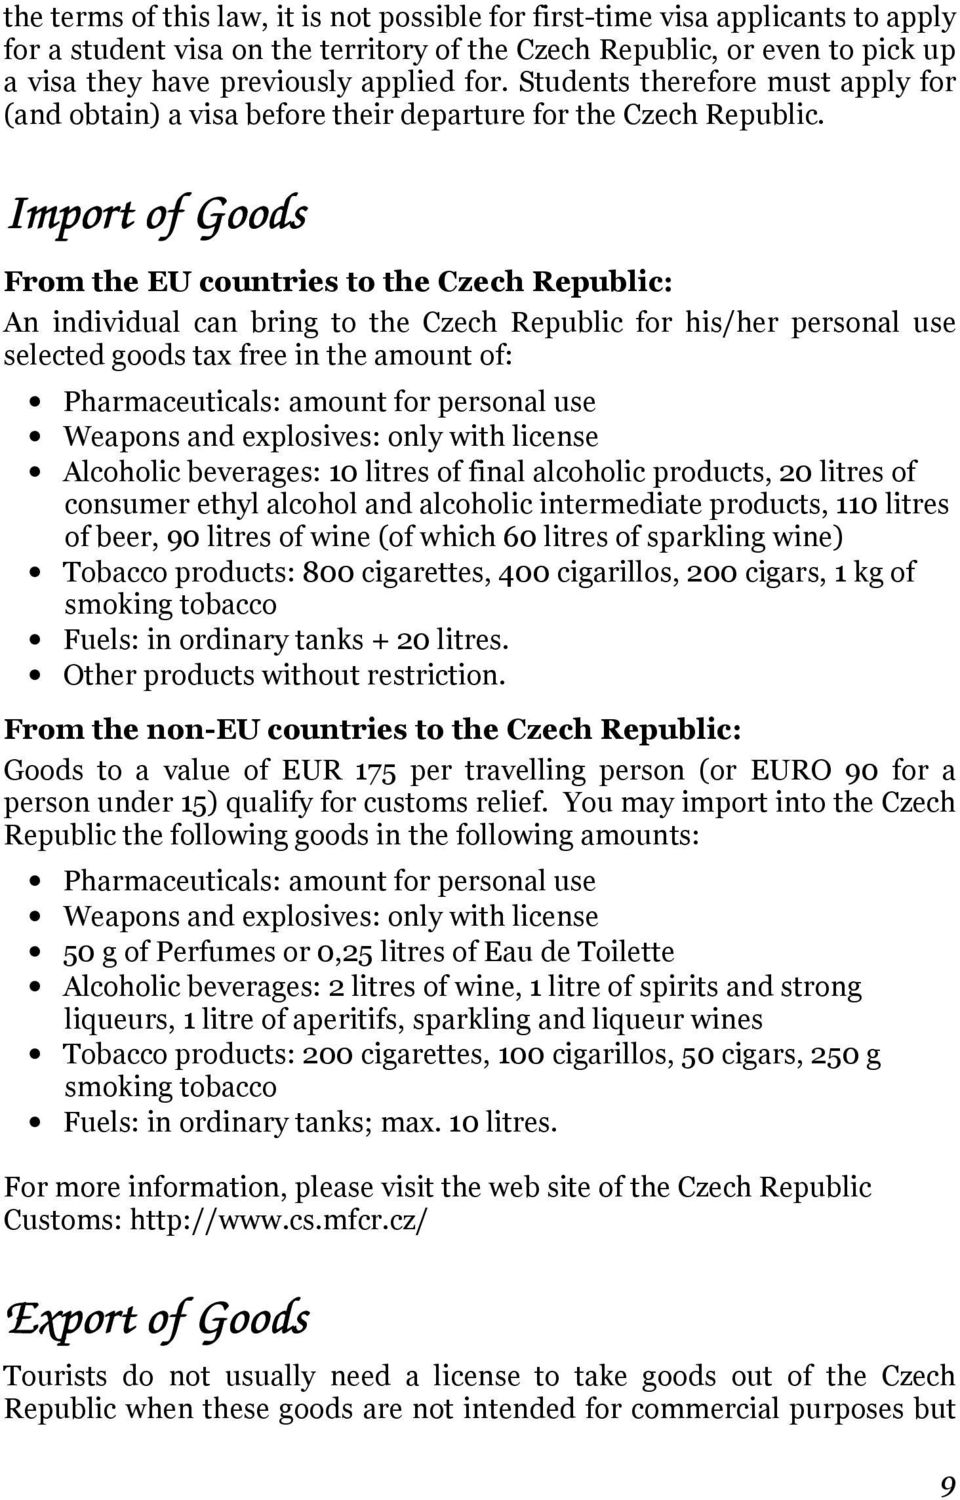 Import of Goods From the EU countries to the Czech Republic: An individual can bring to the Czech Republic for his/her personal use selected goods tax free in the amount of: Pharmaceuticals: amount